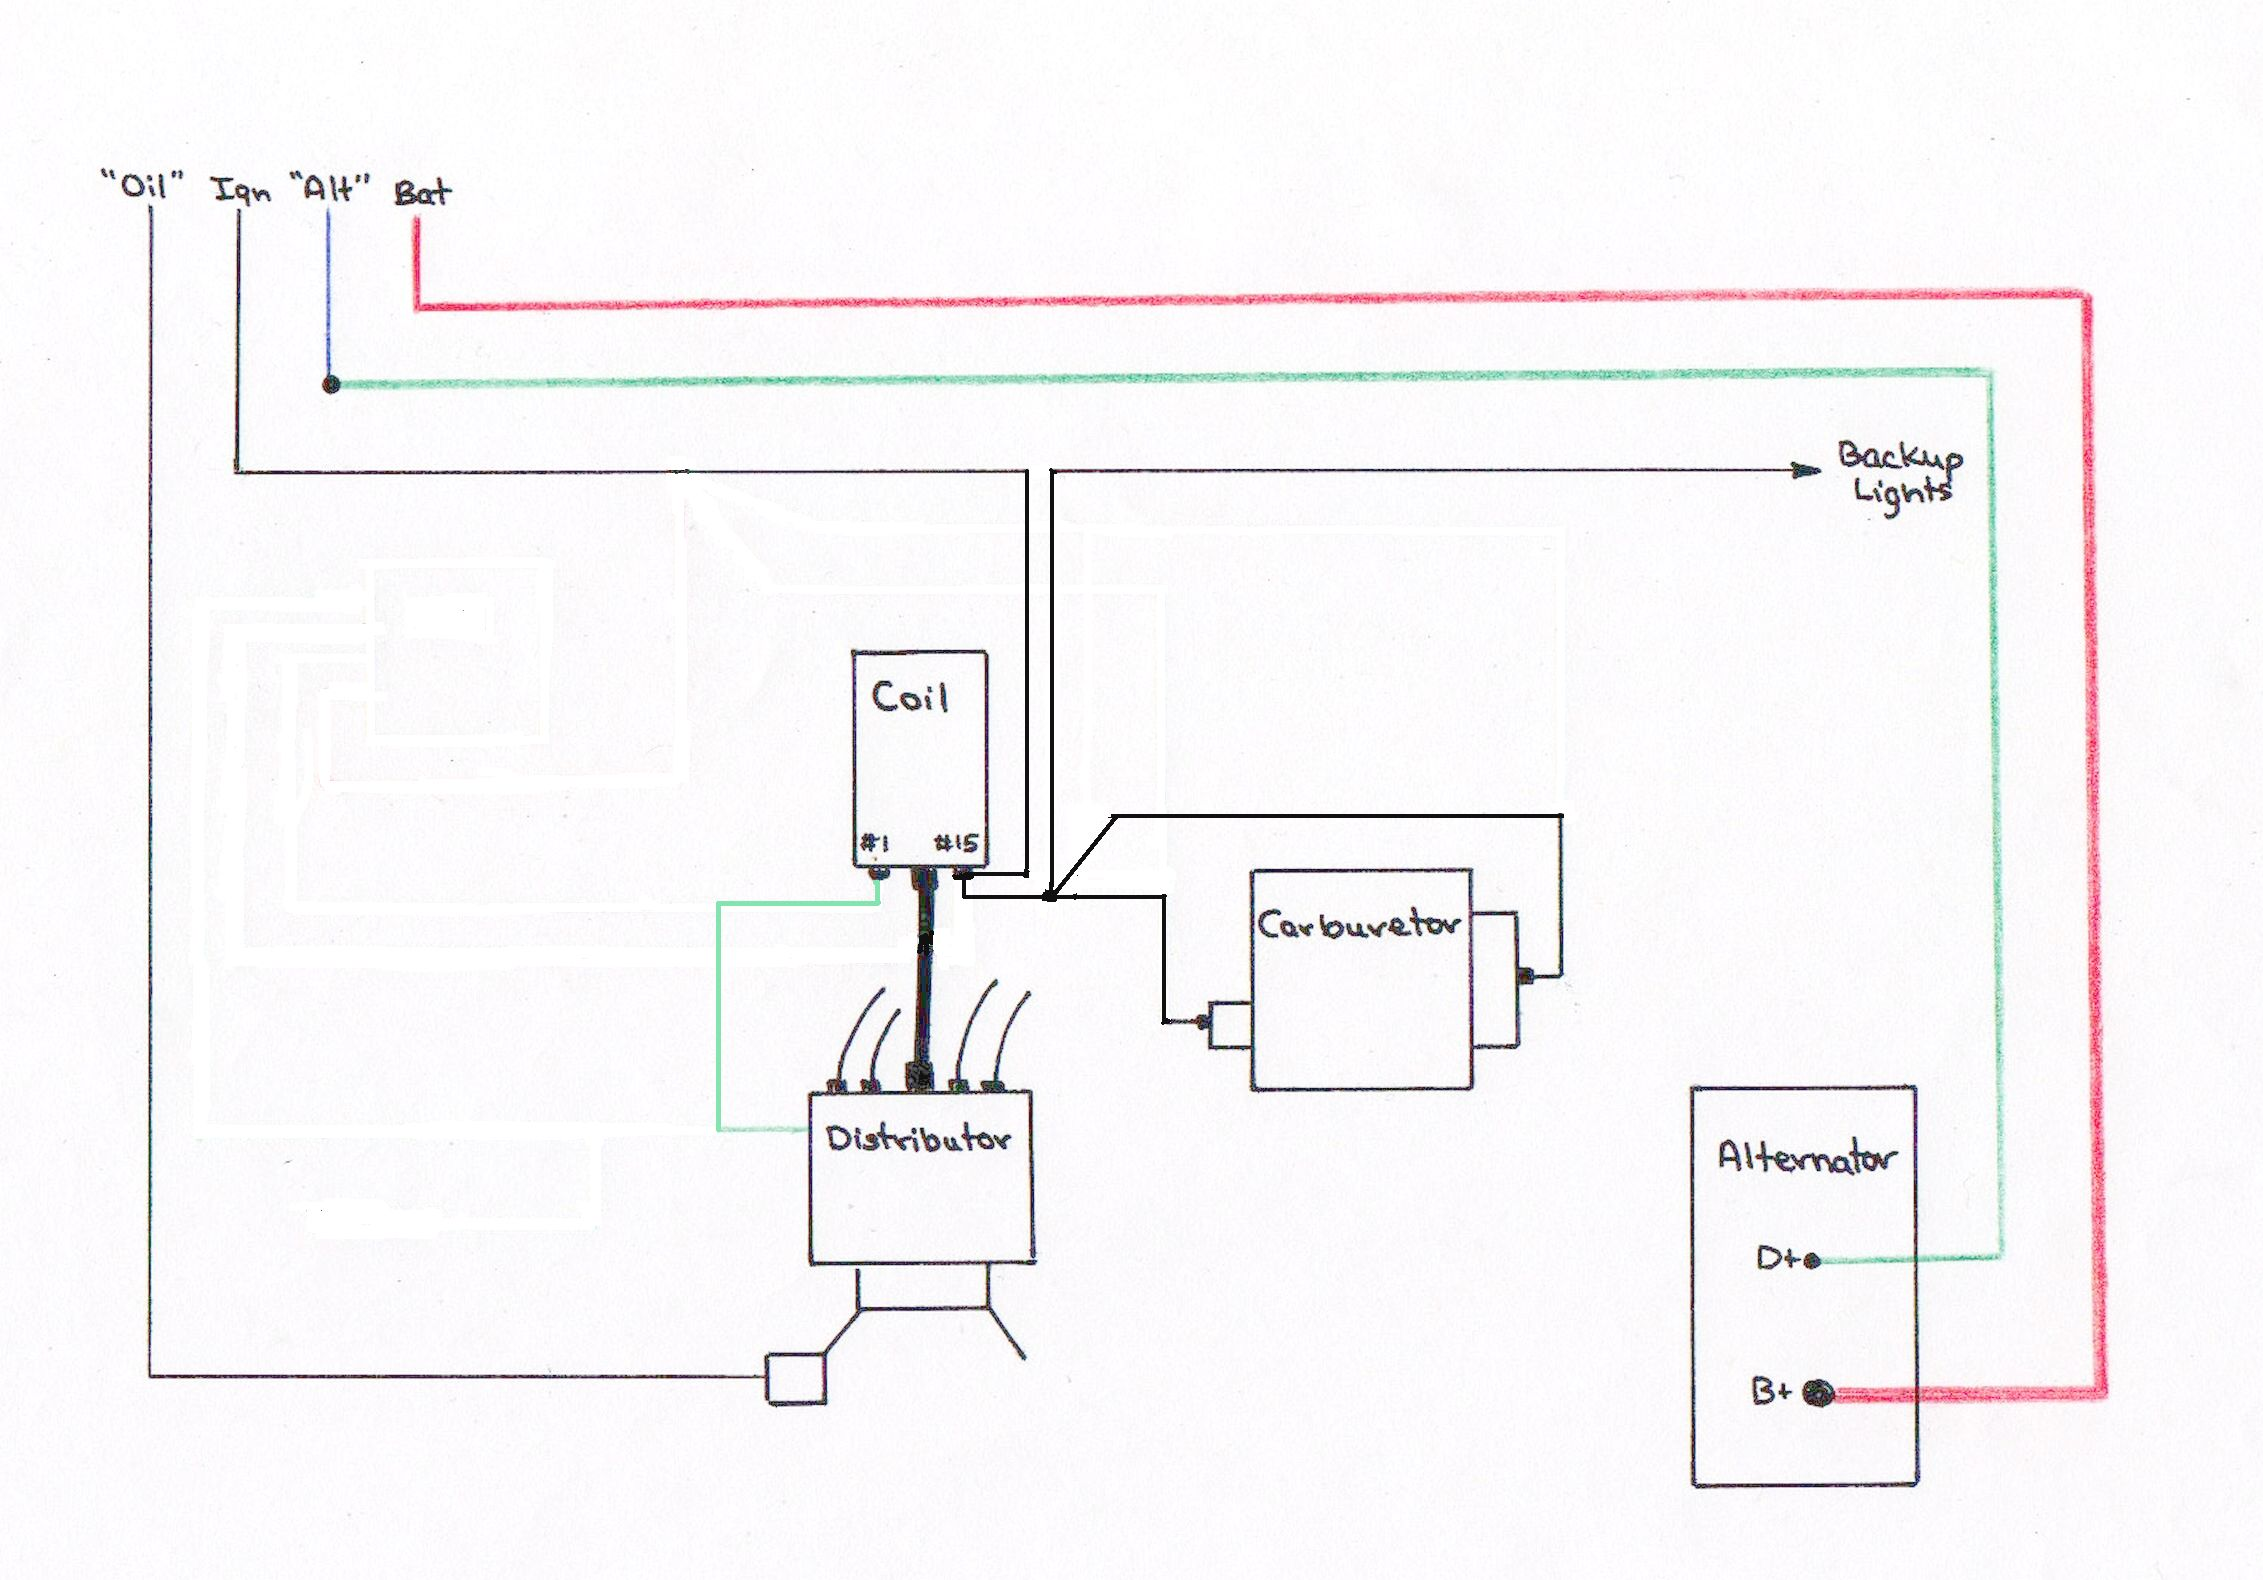 handdrawn_schematic alternator wiring compu fire ignition wiring diagram at aneh.co